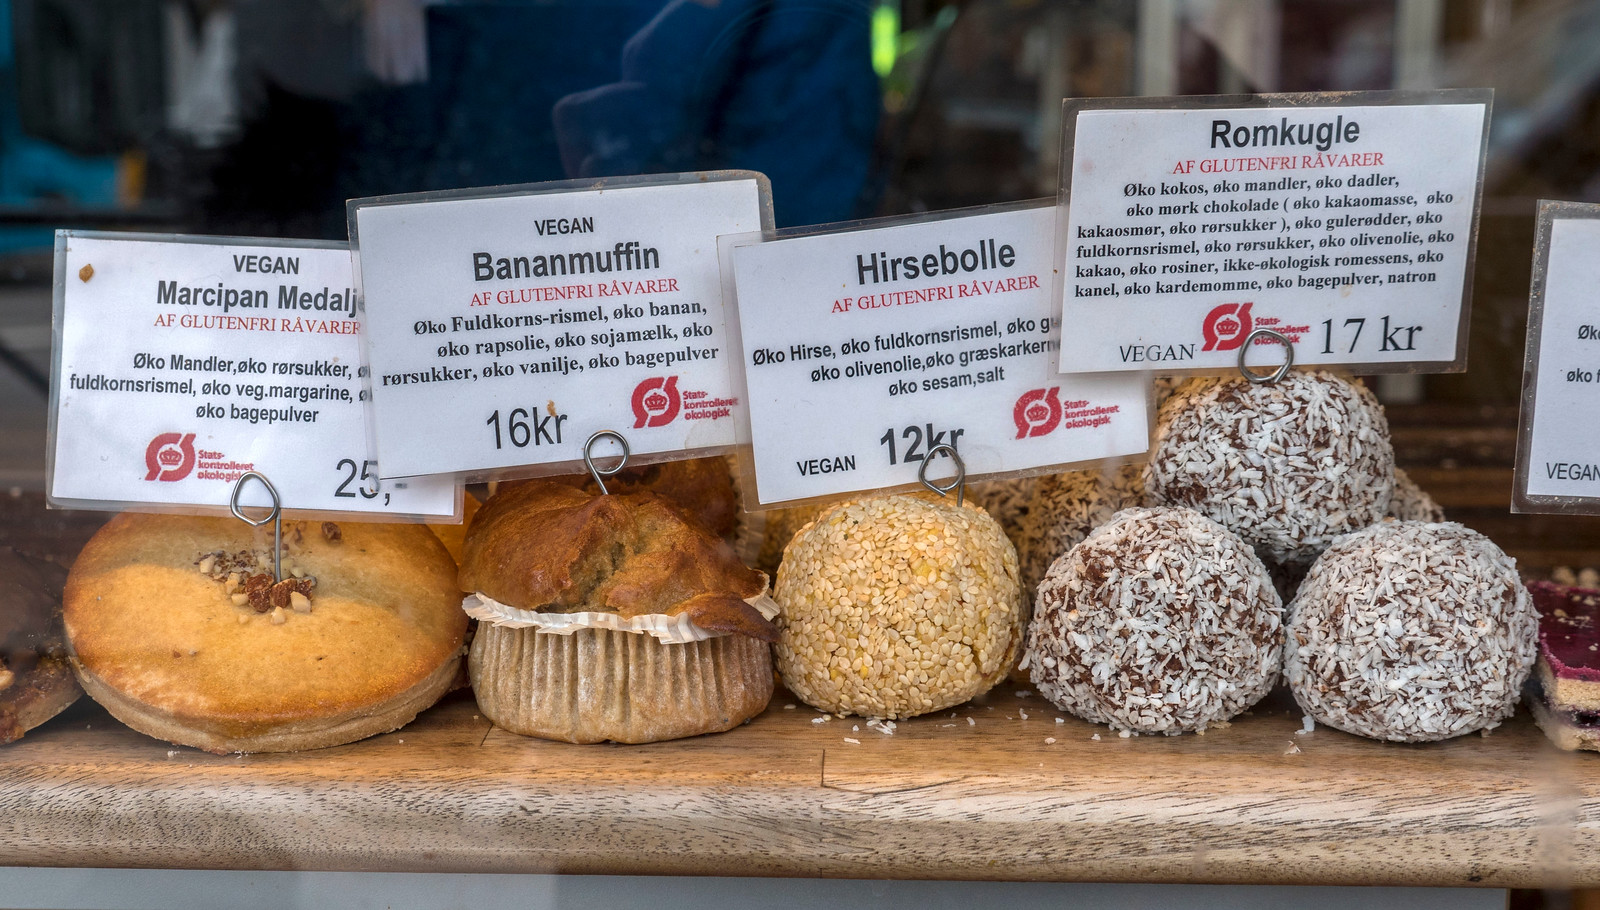 Naturbageriet in Copenhagen - Vegan and gluten-free baked goods